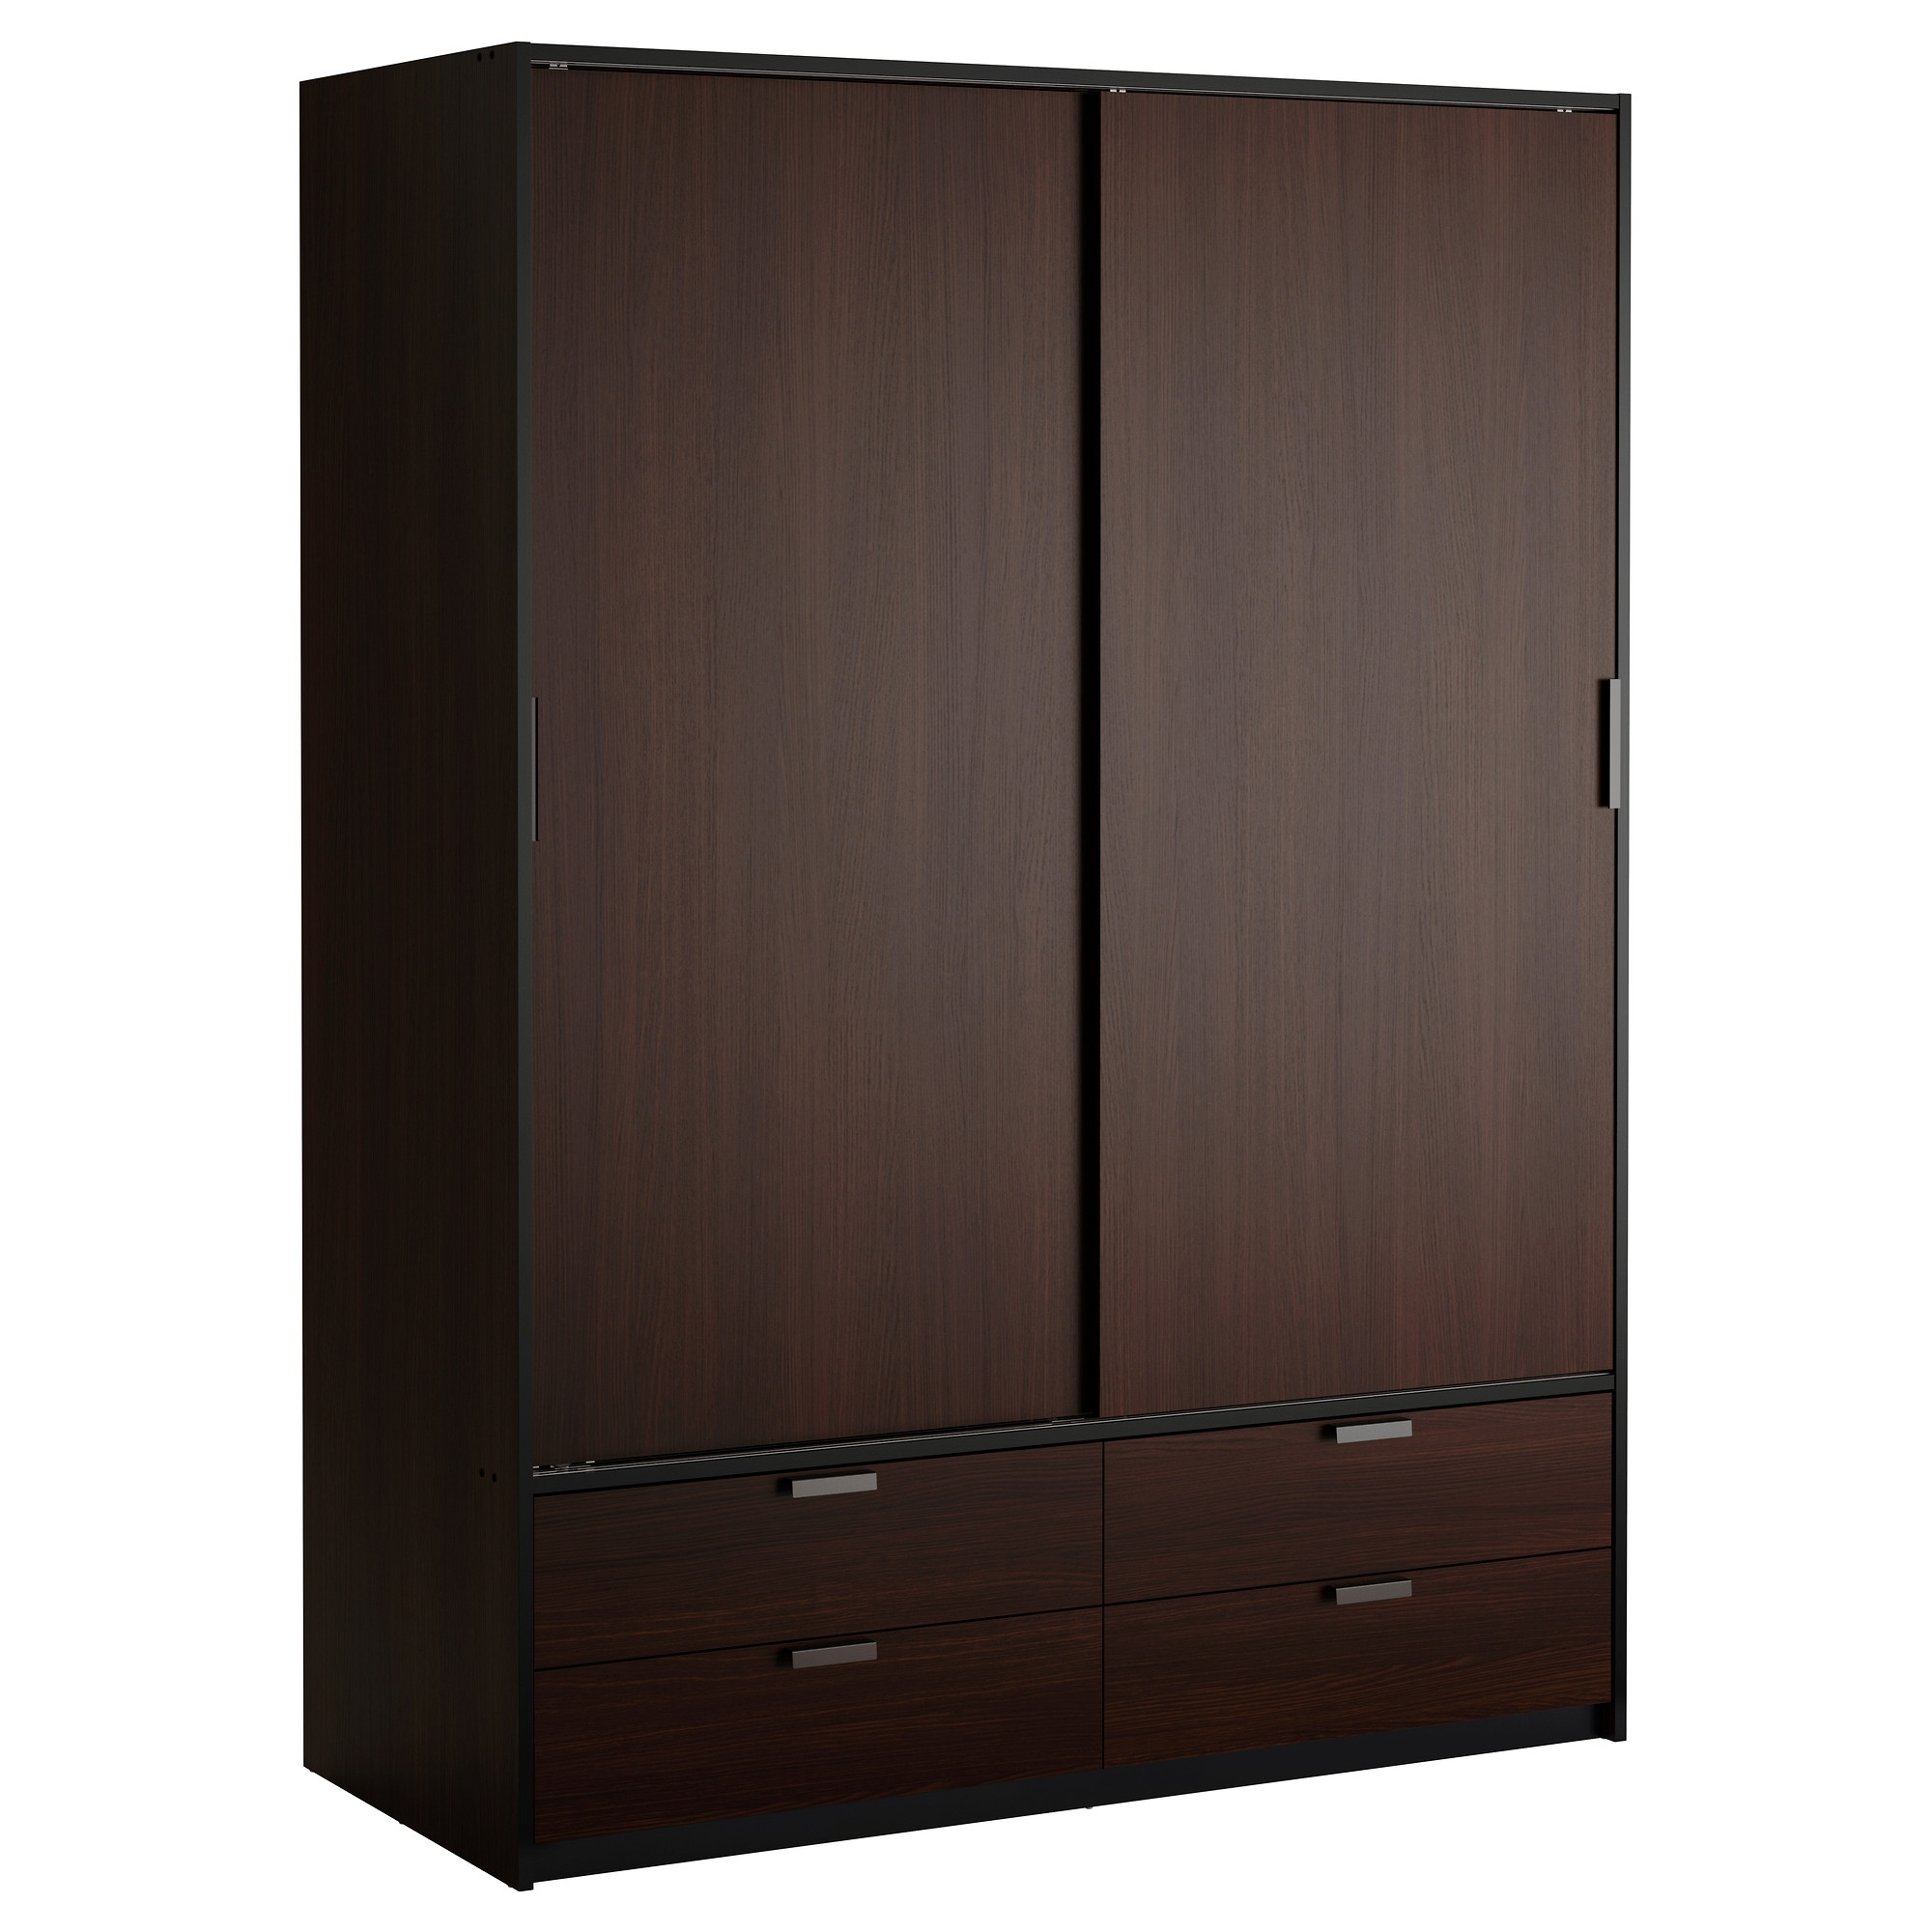 Most Current Possible Wardrobe Solution – Trysil Wardrobe W Sliding Doors/4 Intended For Black Wood Wardrobes (View 7 of 15)